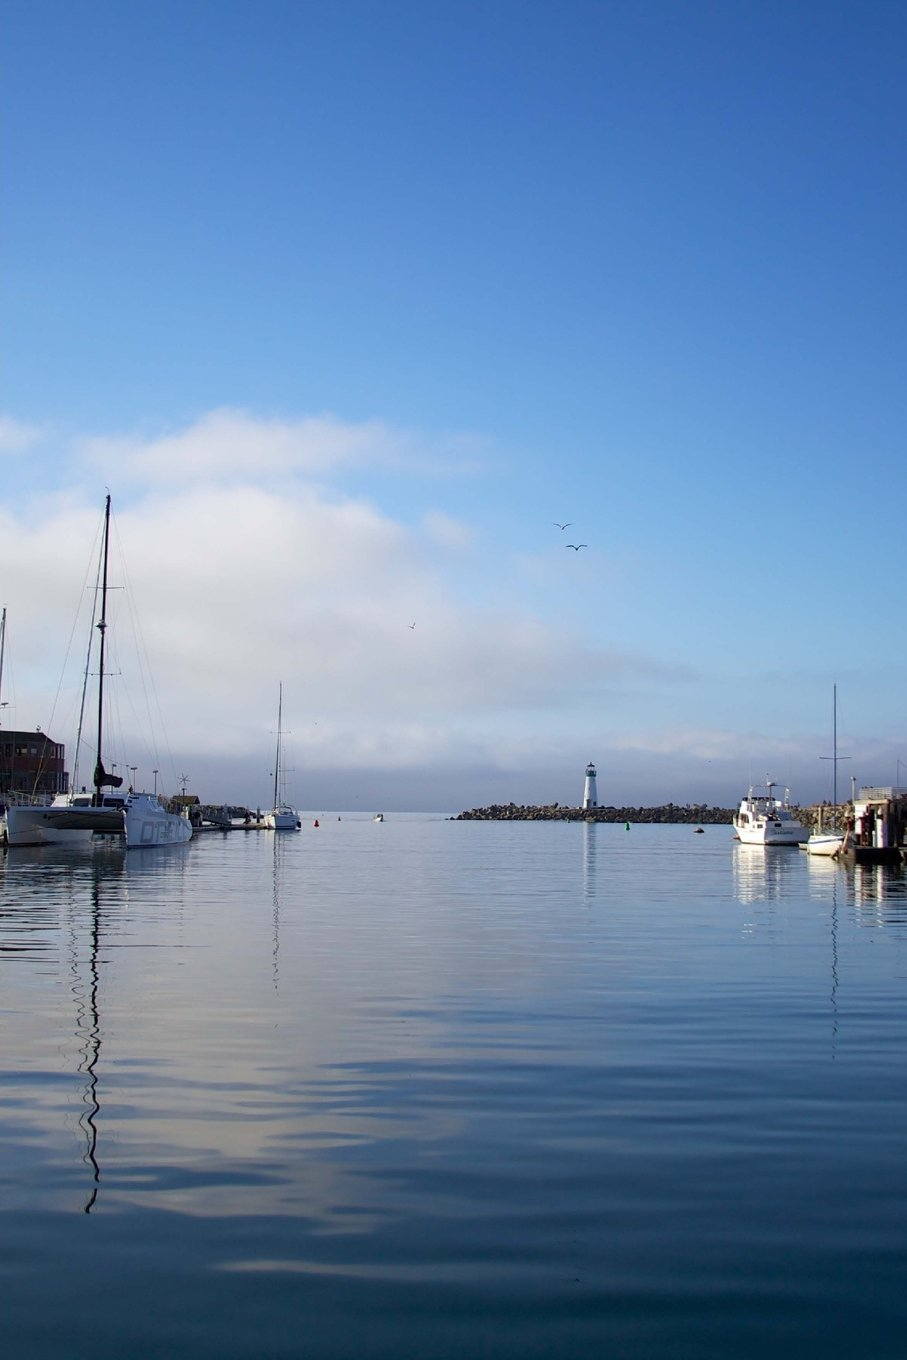 Read Online Boat Harbor in Santa Cruz, California Journal: Take Notes, Write Down Memories in this 150 Page Lined Journal pdf